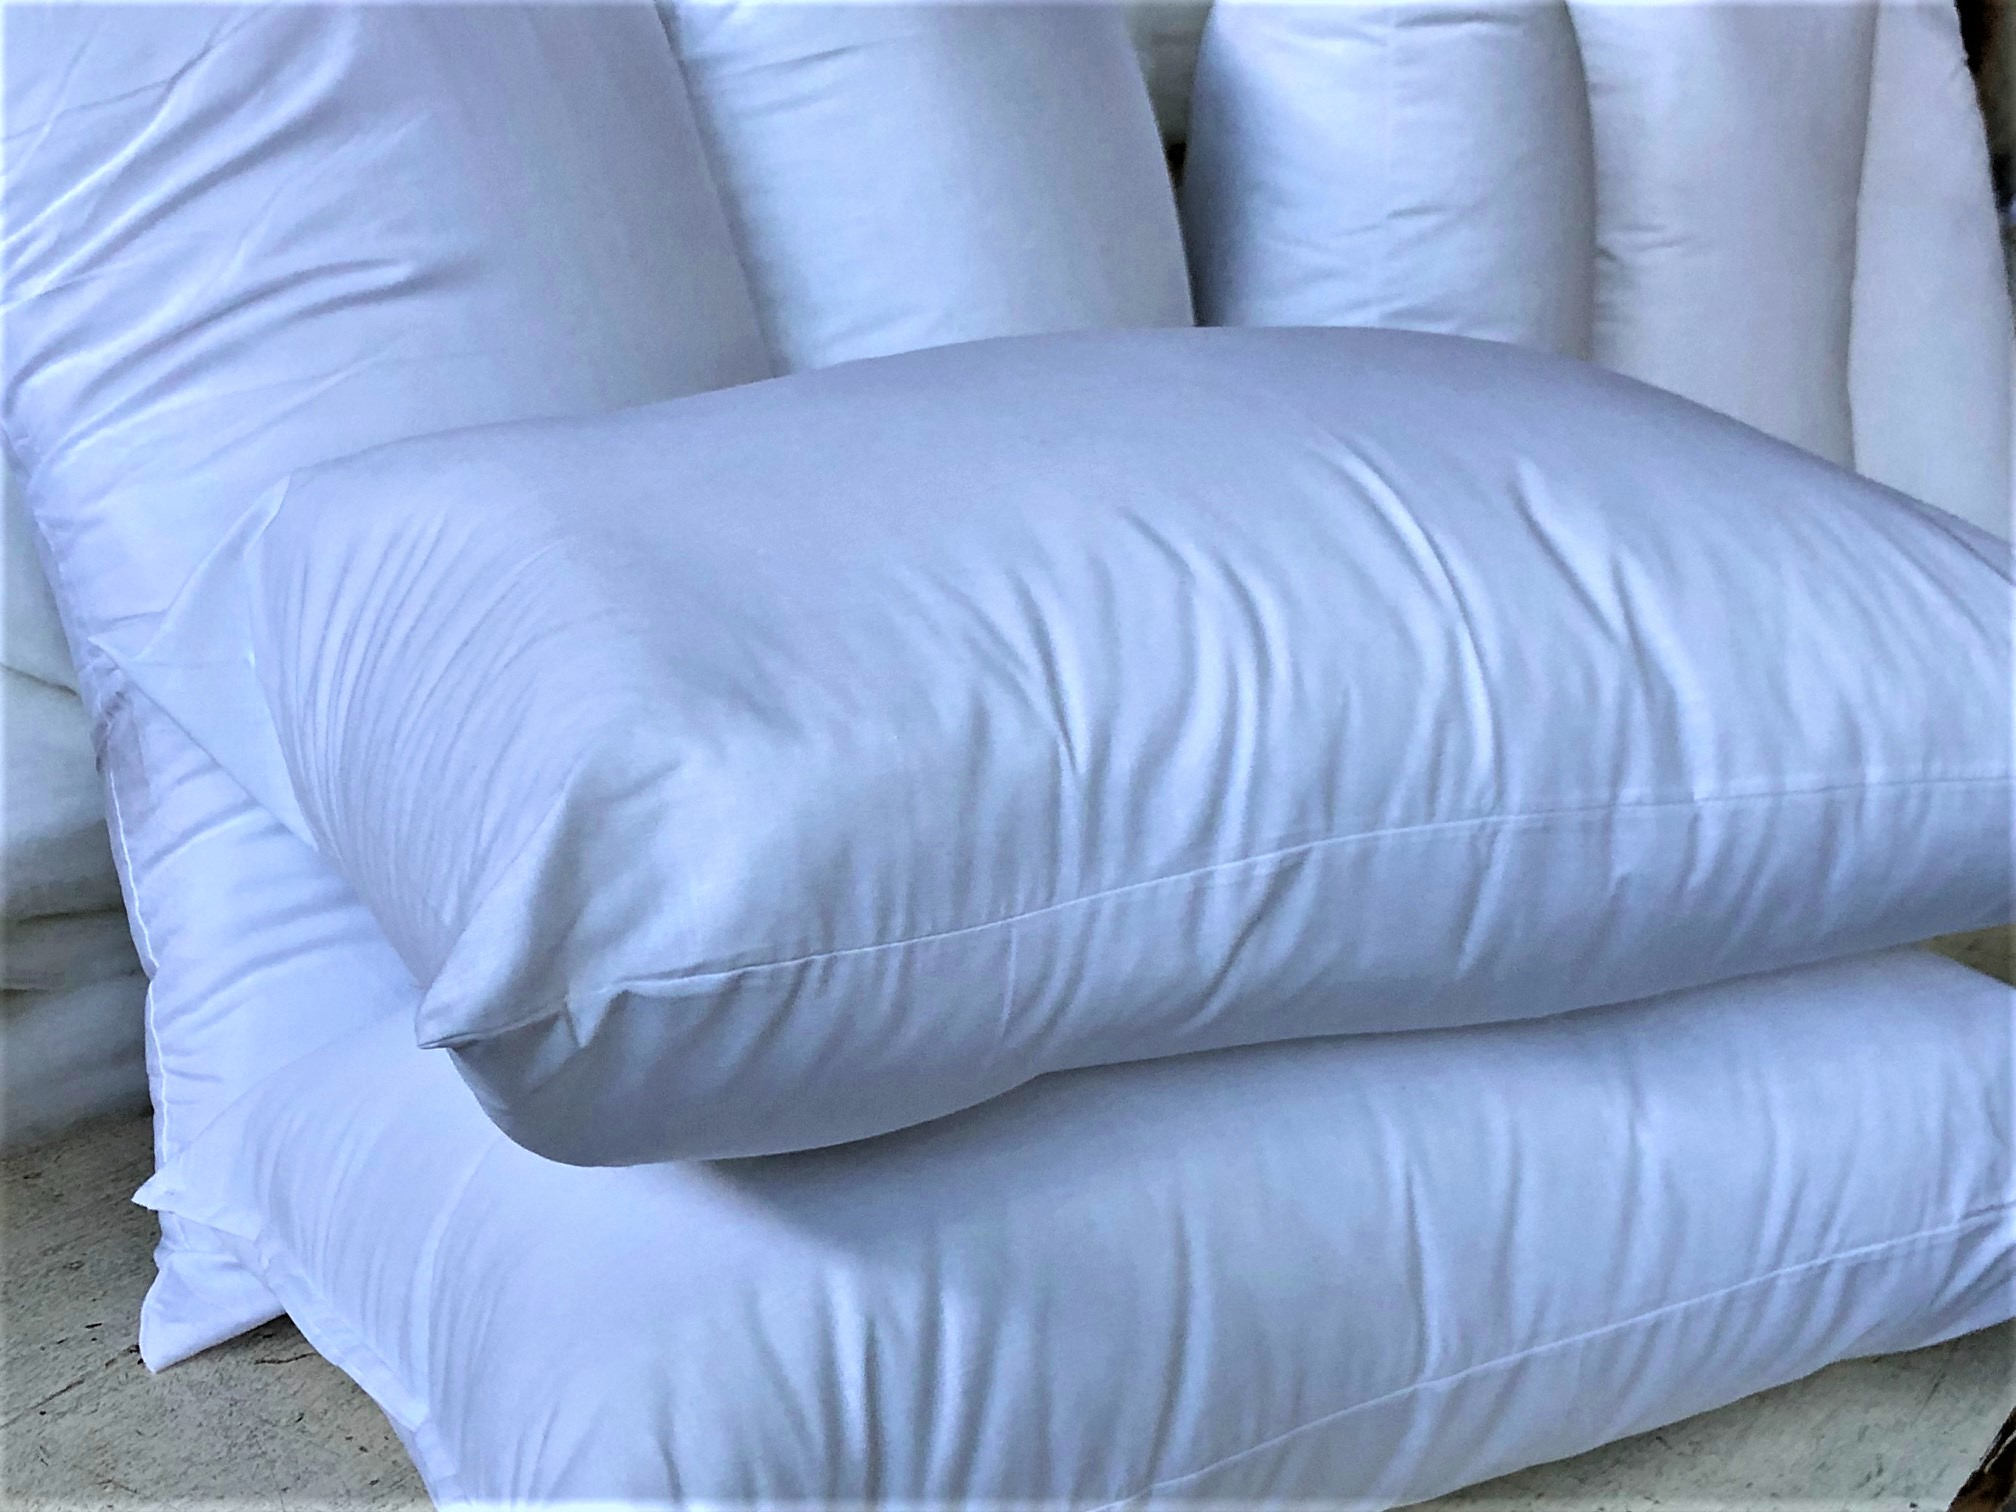 Pillows with polyester hollow fibre